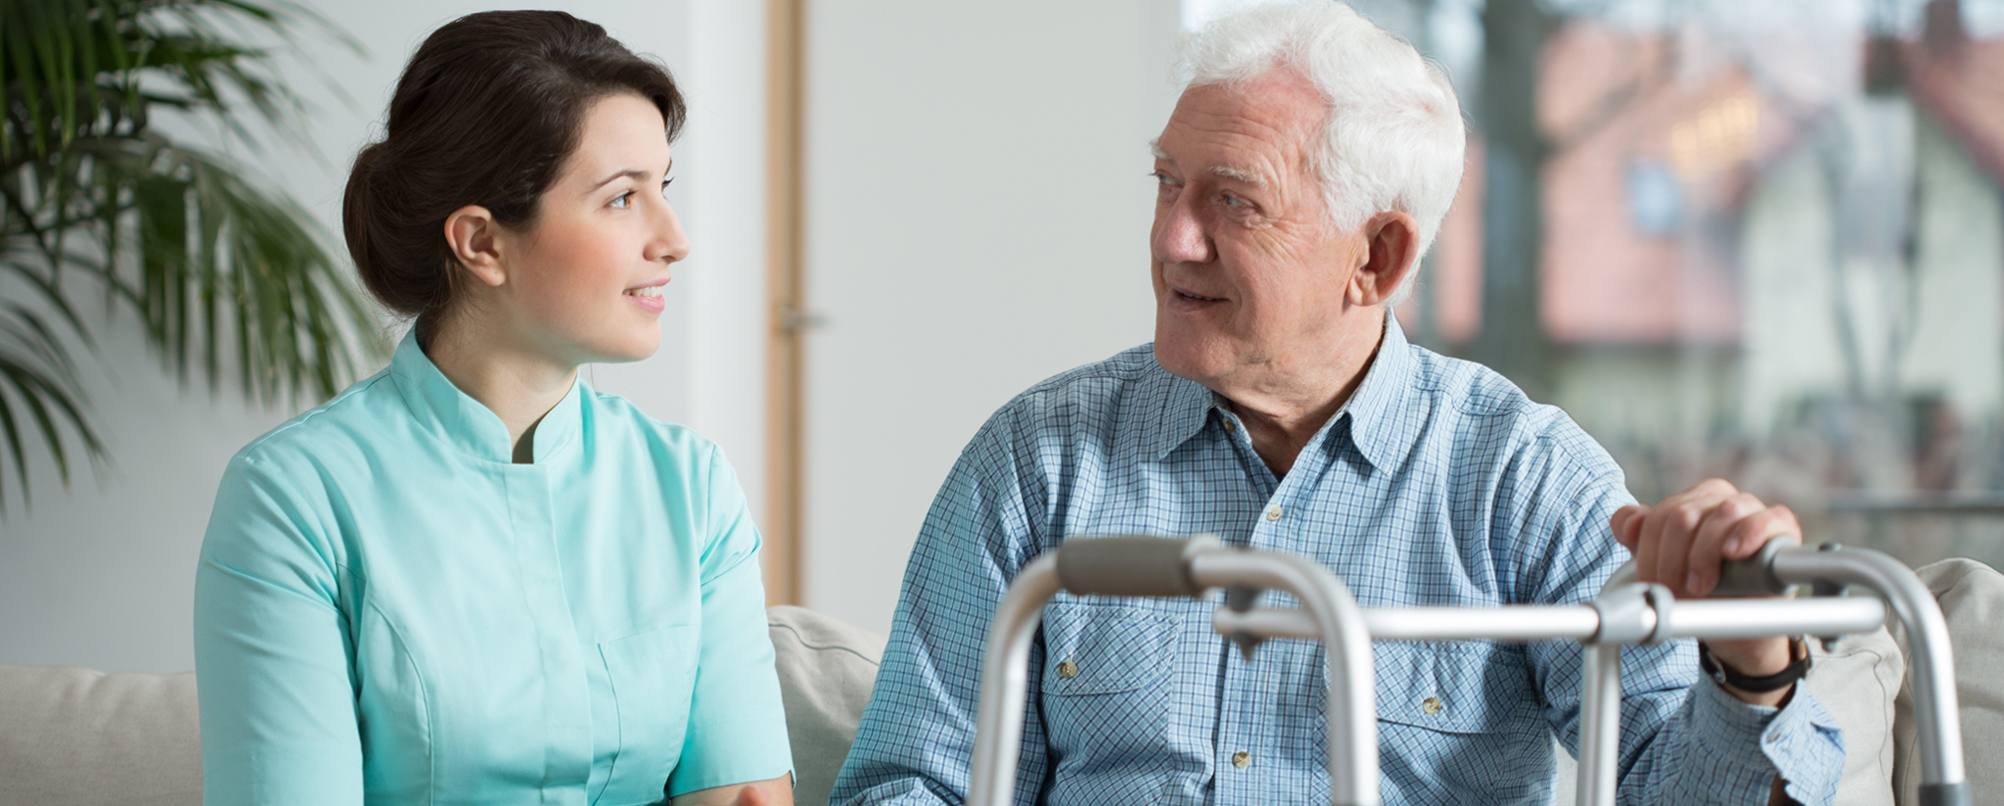 Senior man with walker speaks with younger professional health specialist